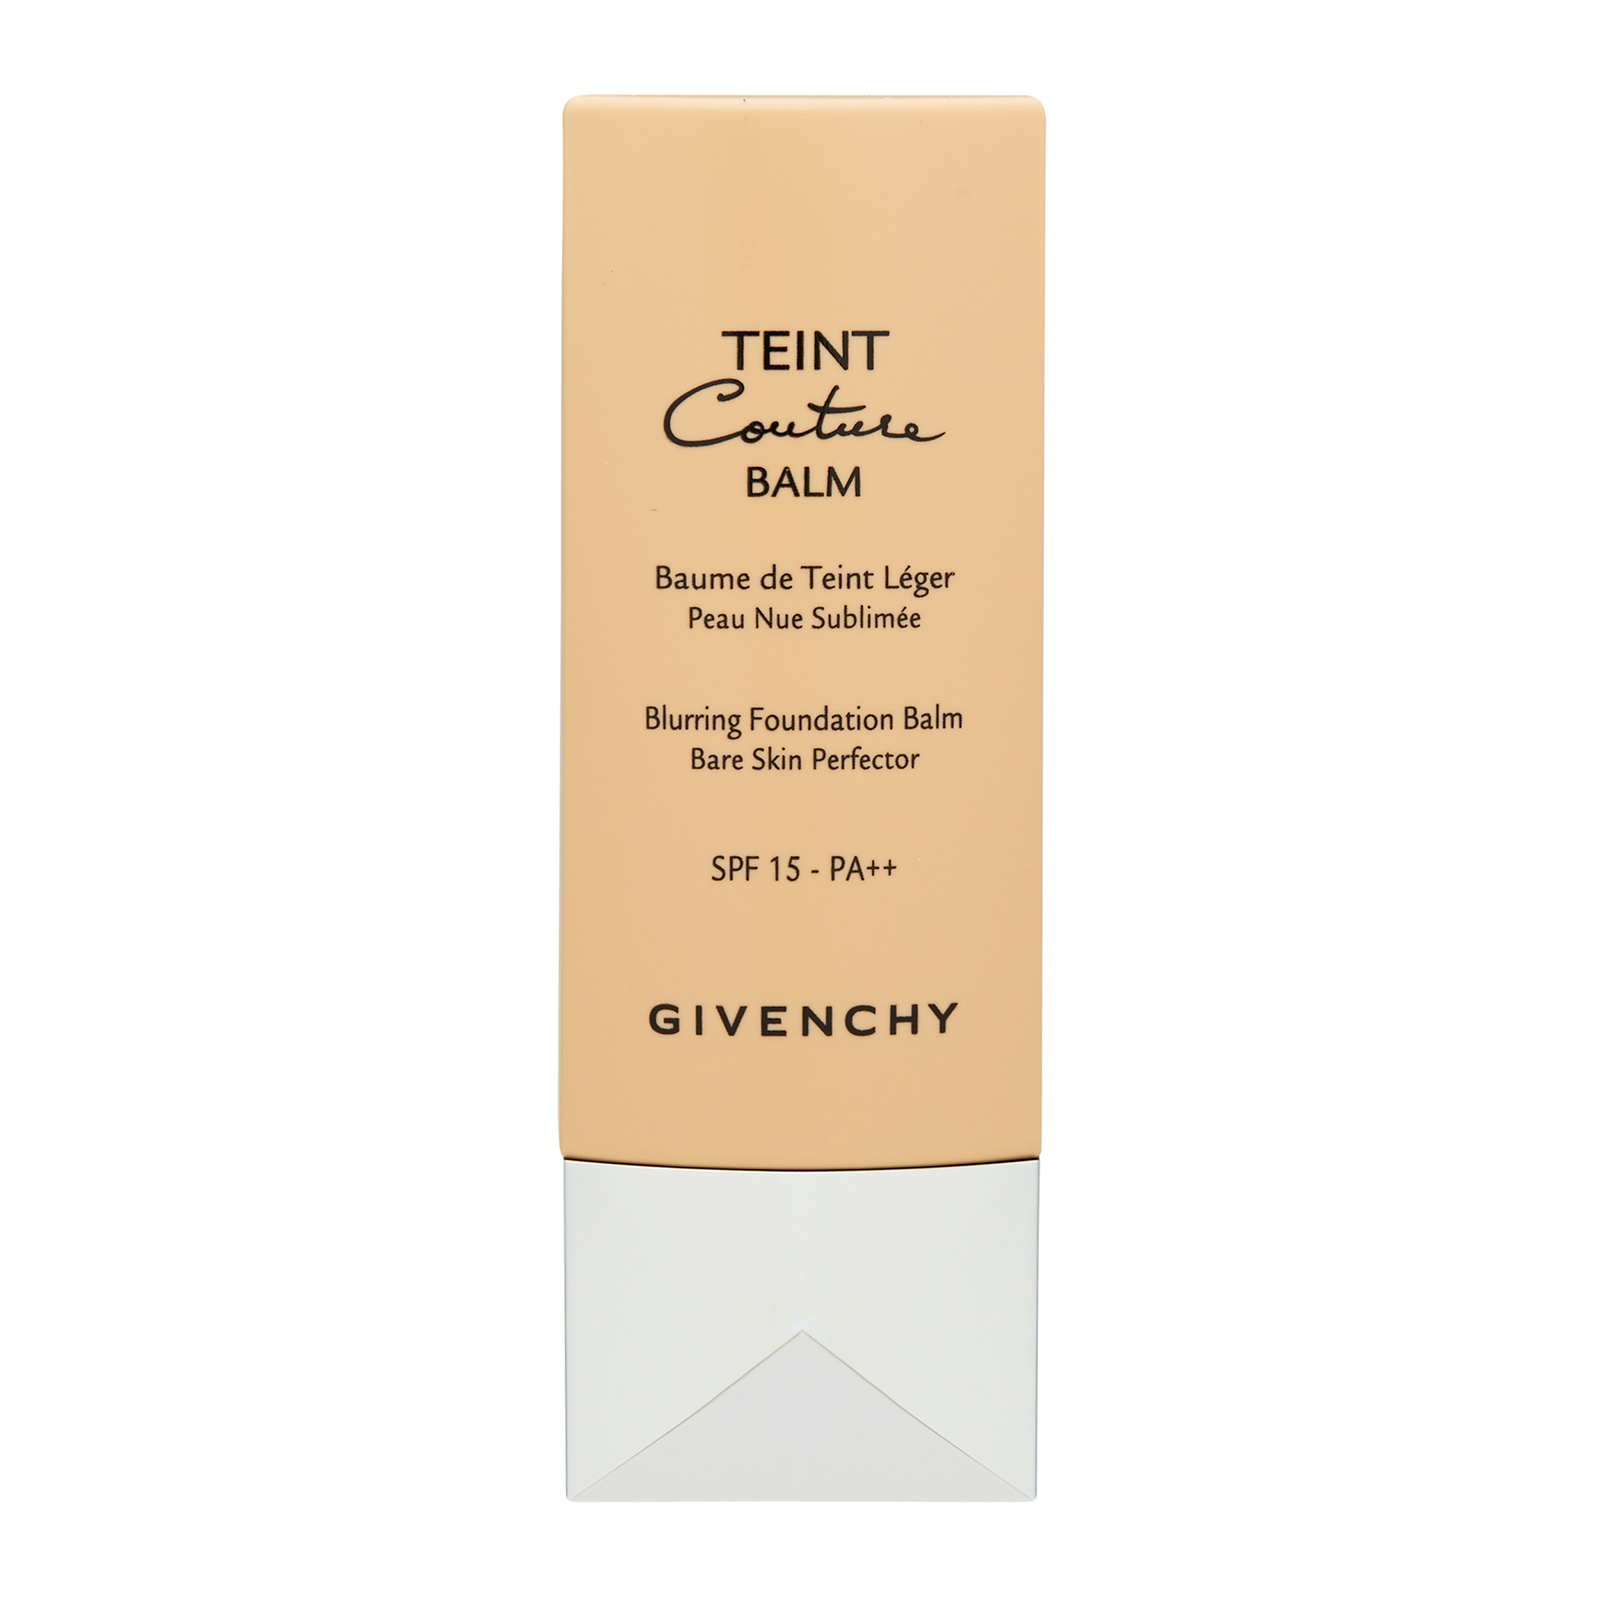 Givenchy  Teint Couture Balm Blurring Foundation Balm SPF15 – PA++ 3 Nude Sand, 1oz, 30ml from Cosme-De.com